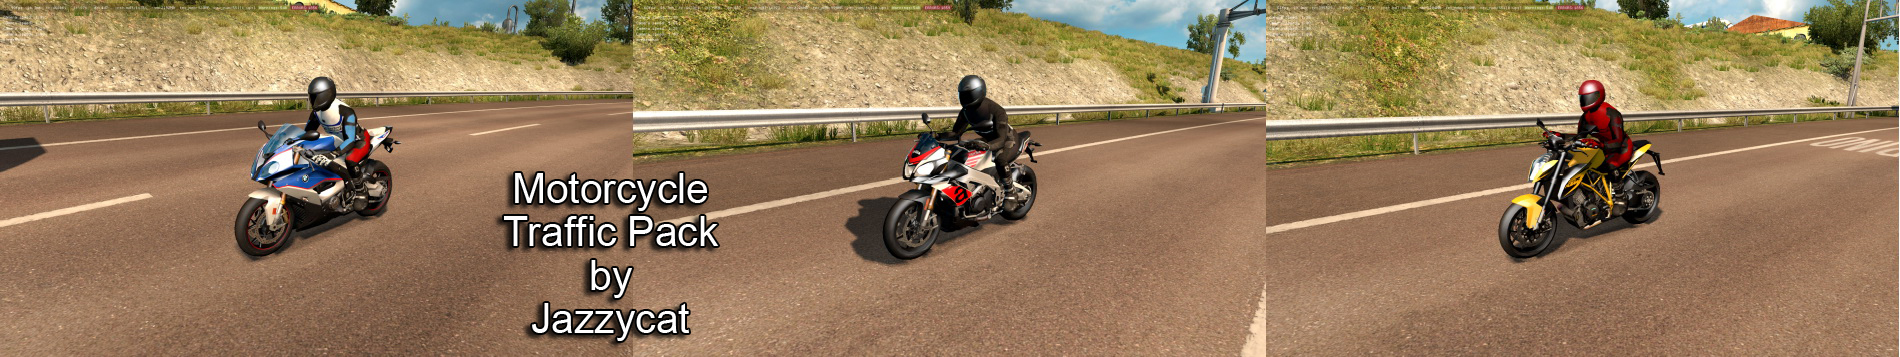 Motorcycle Traffic Pack v1 3 by Jazzycat (upd 09 08 2018